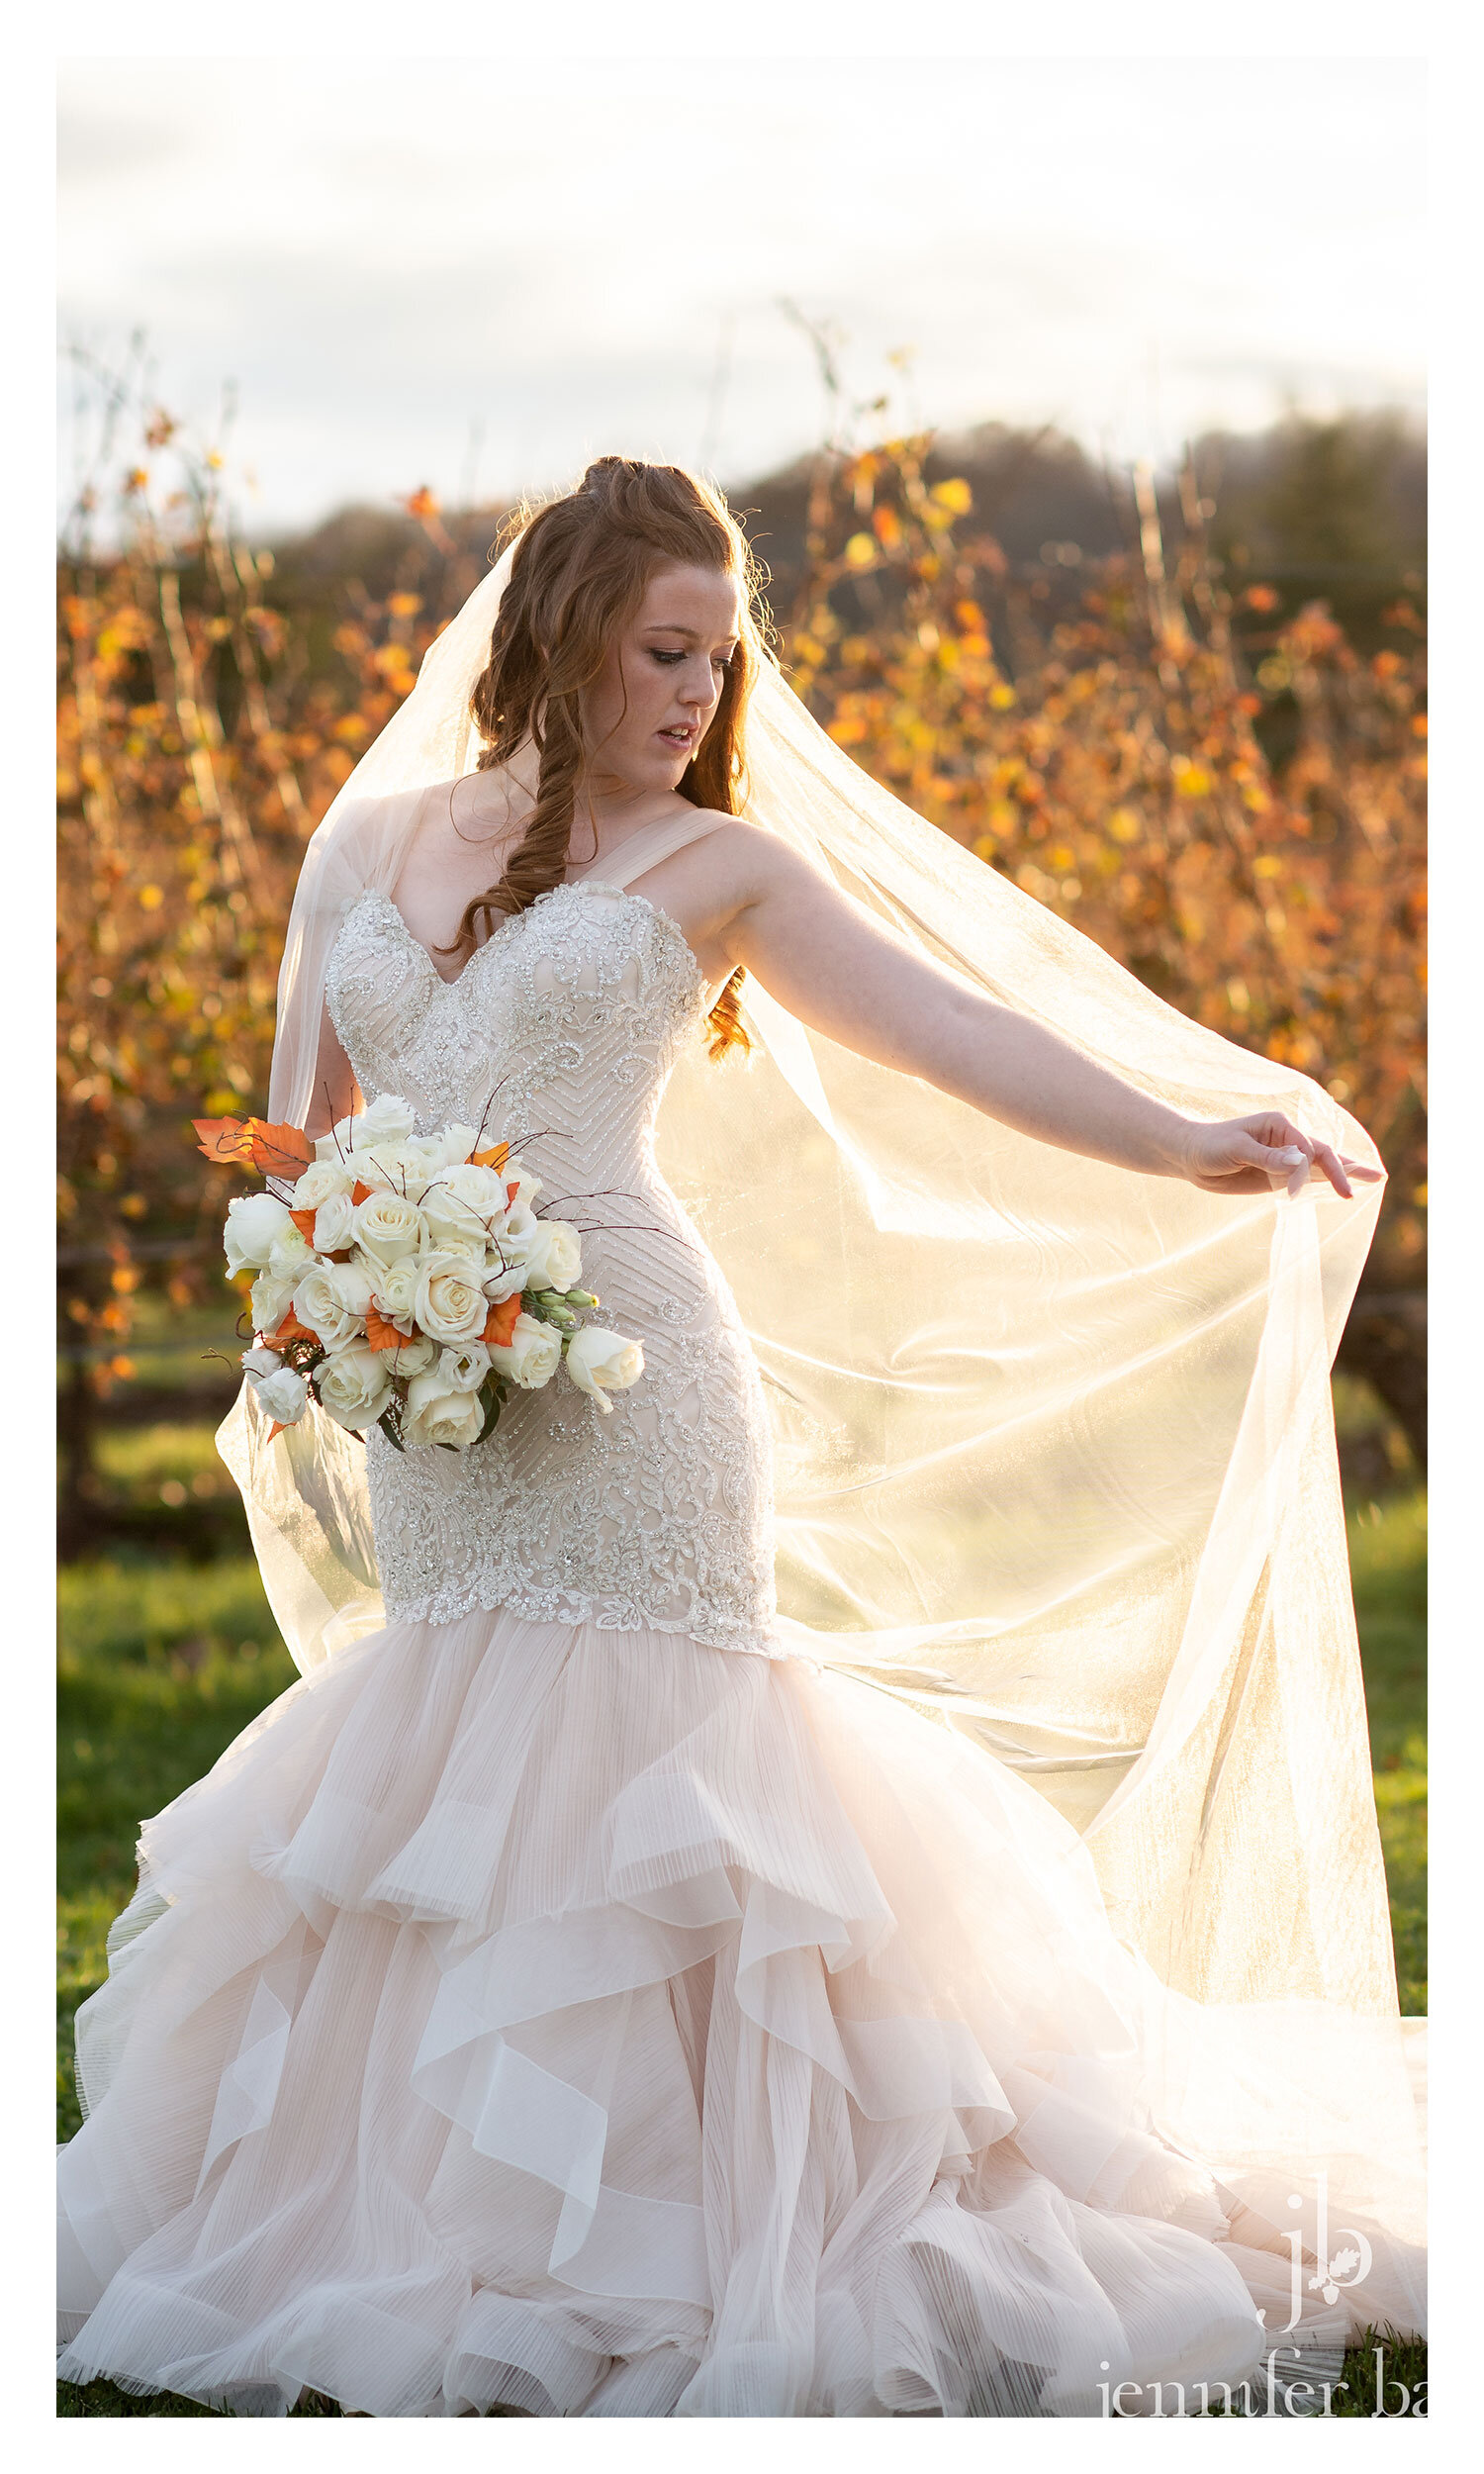 Wedding Wear Alterations I Bridal Gowns Suits Dresses More